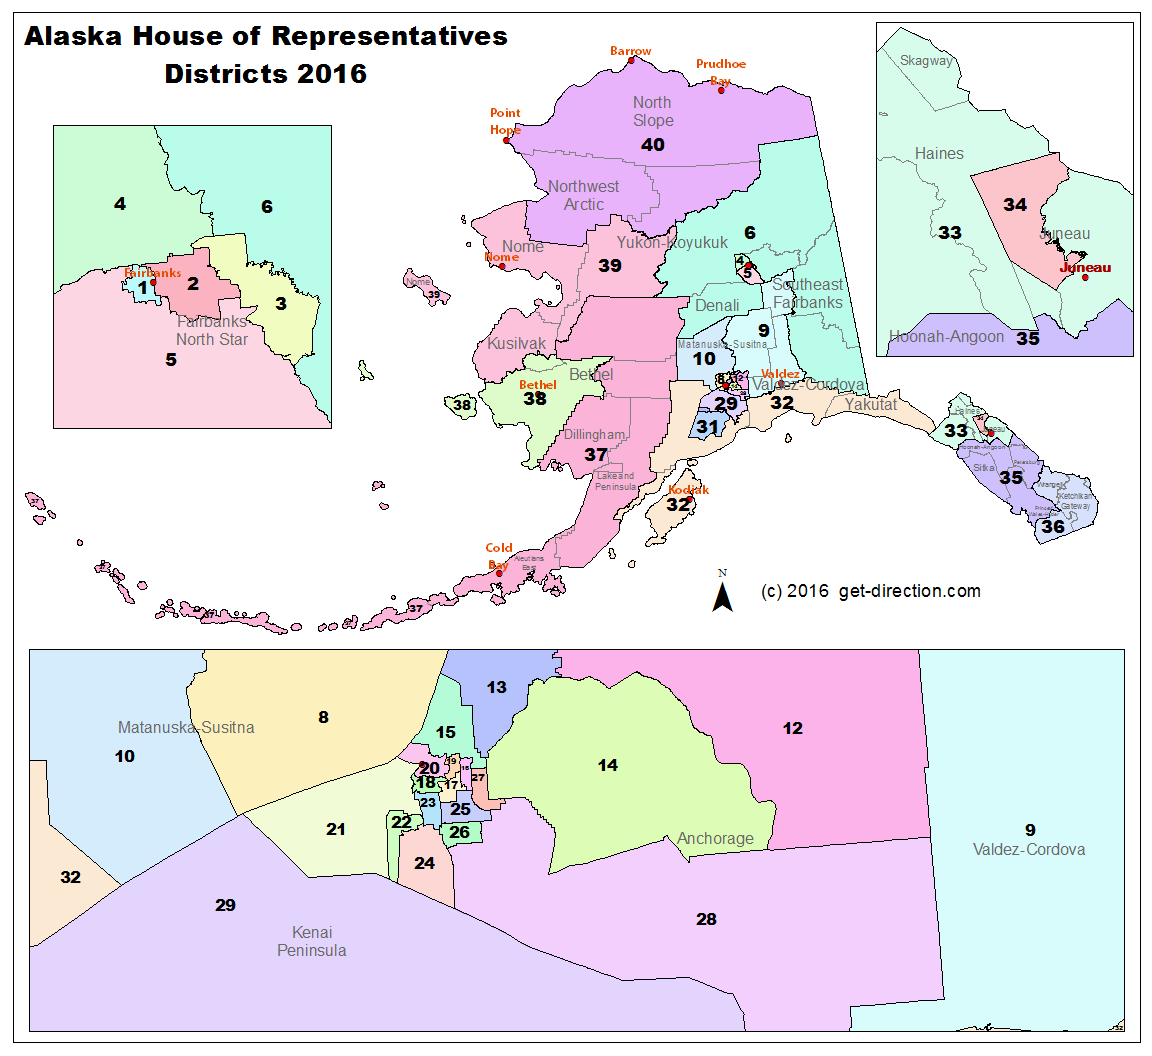 alaska-house-of-representatives-districts-2016.png